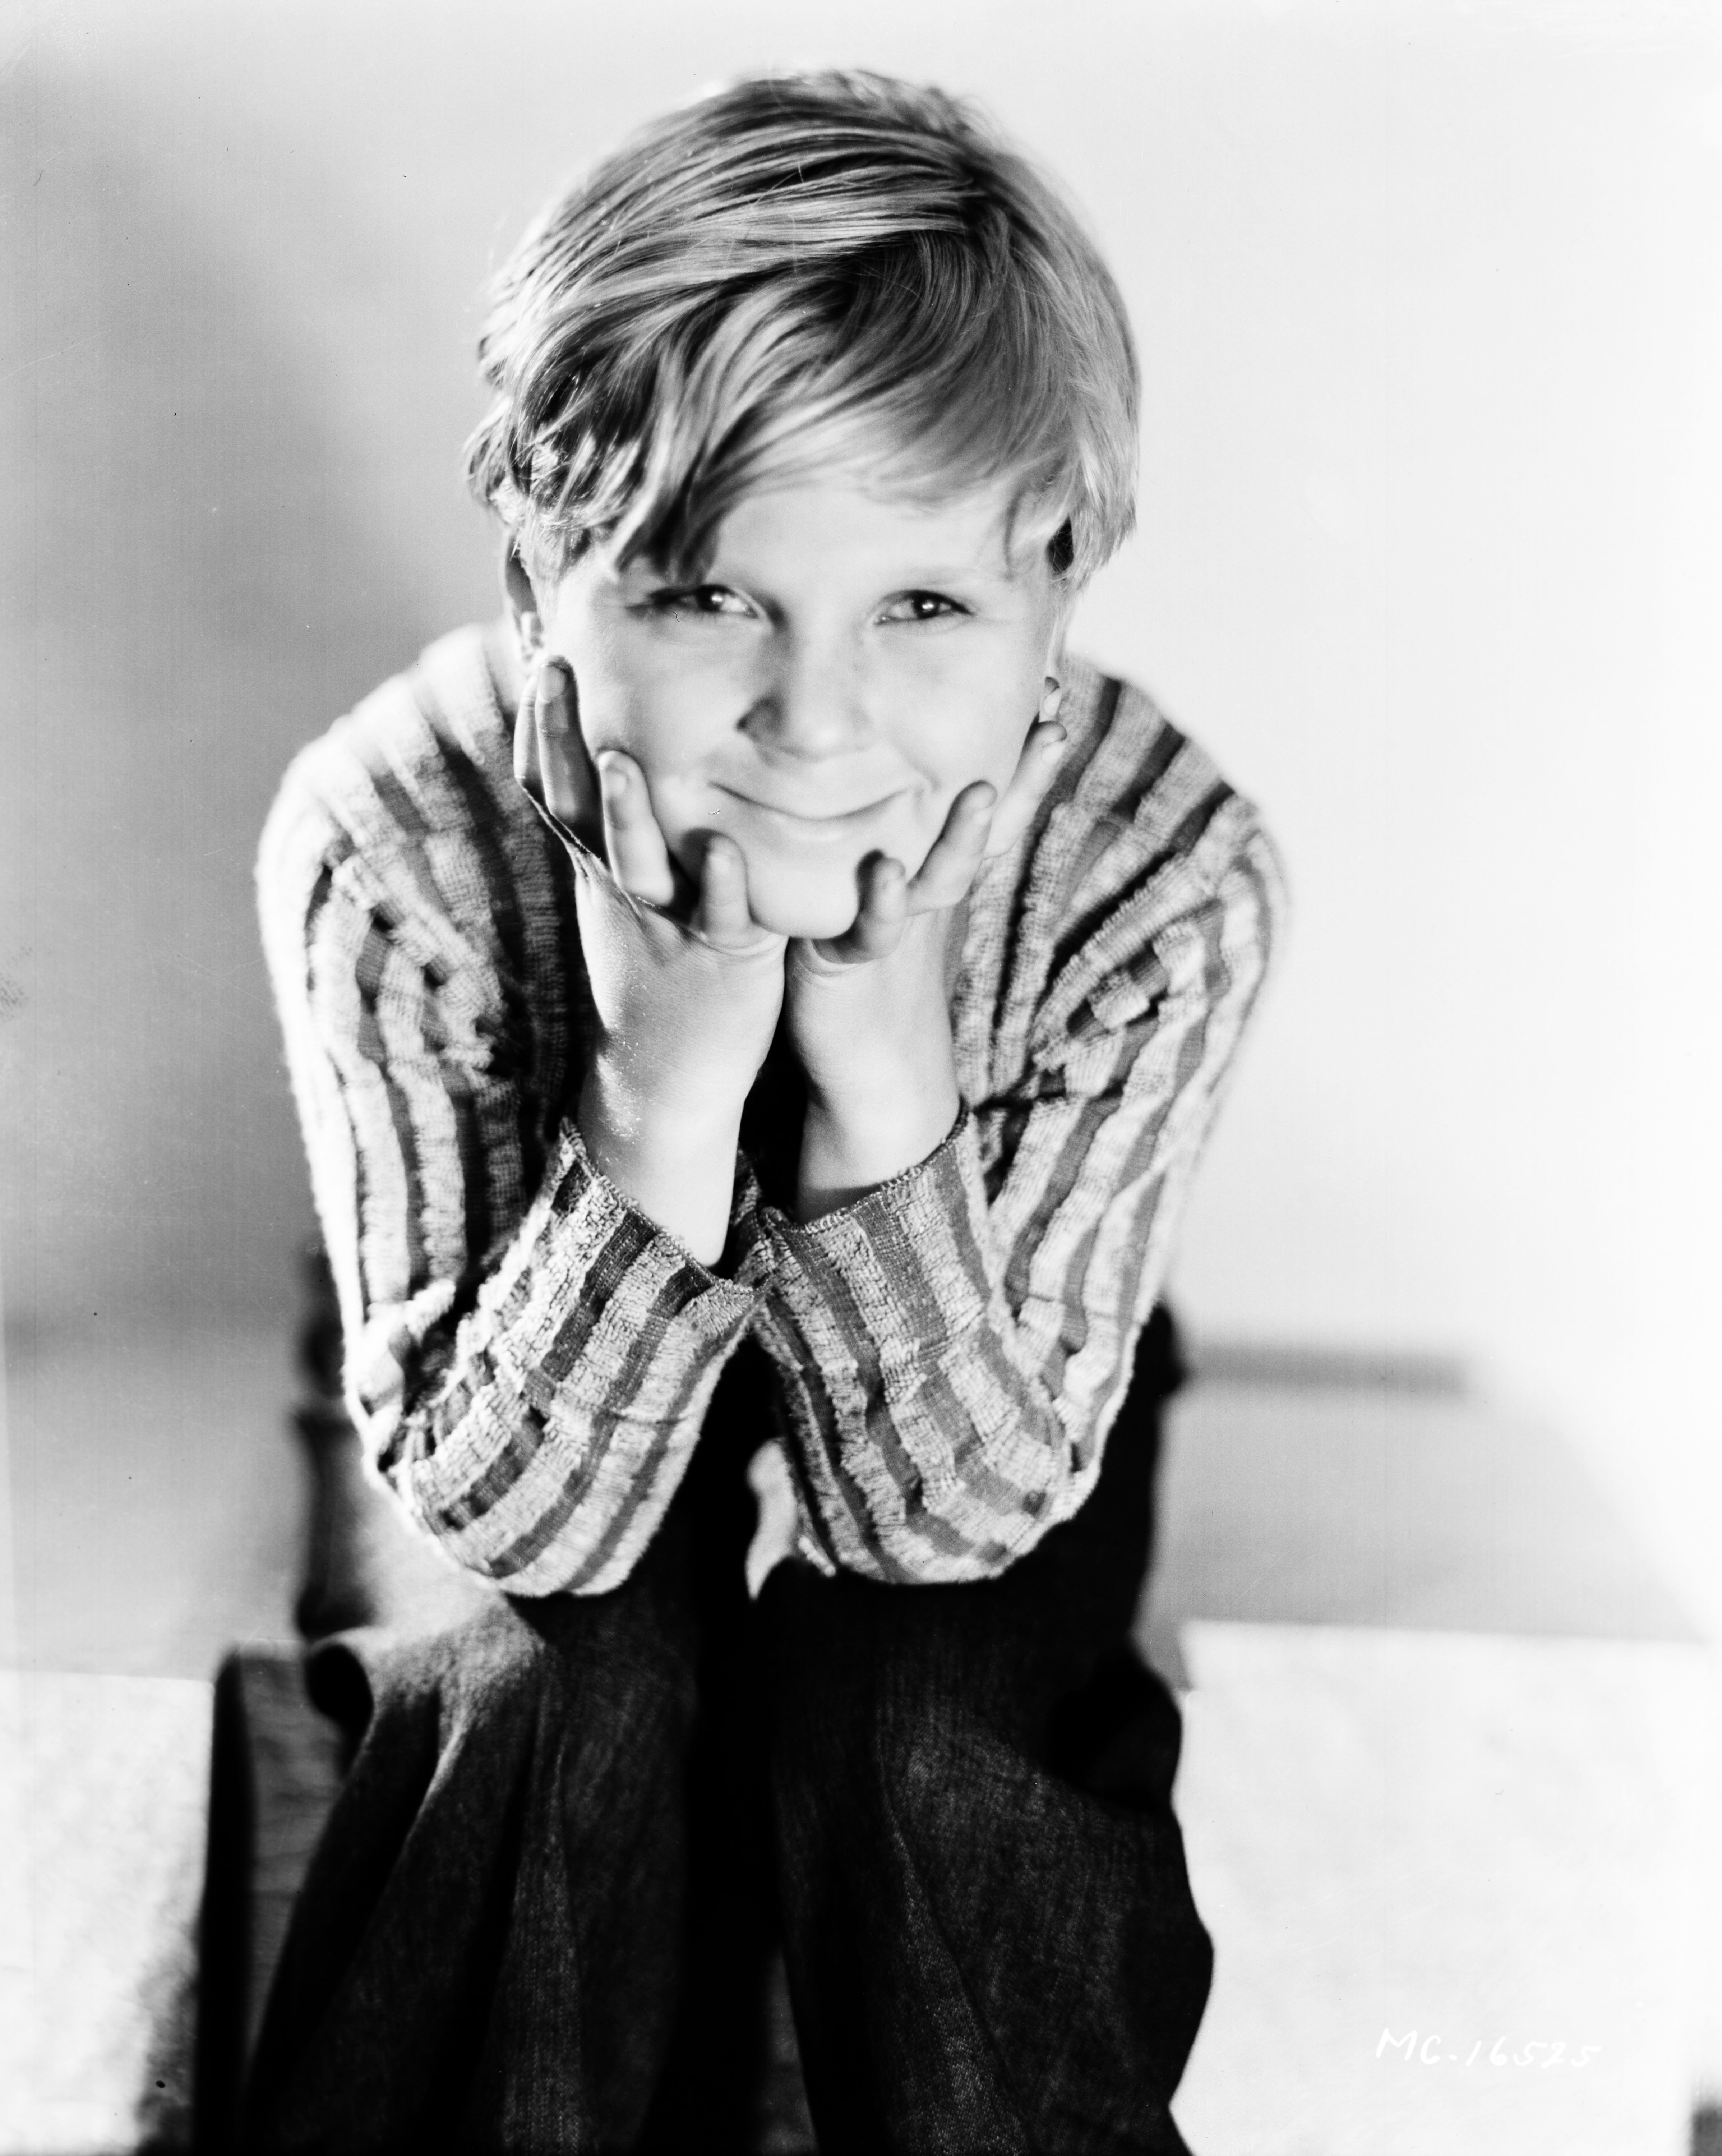 Cooper as a young boy in the late 1920s. | Photo: Getty Images